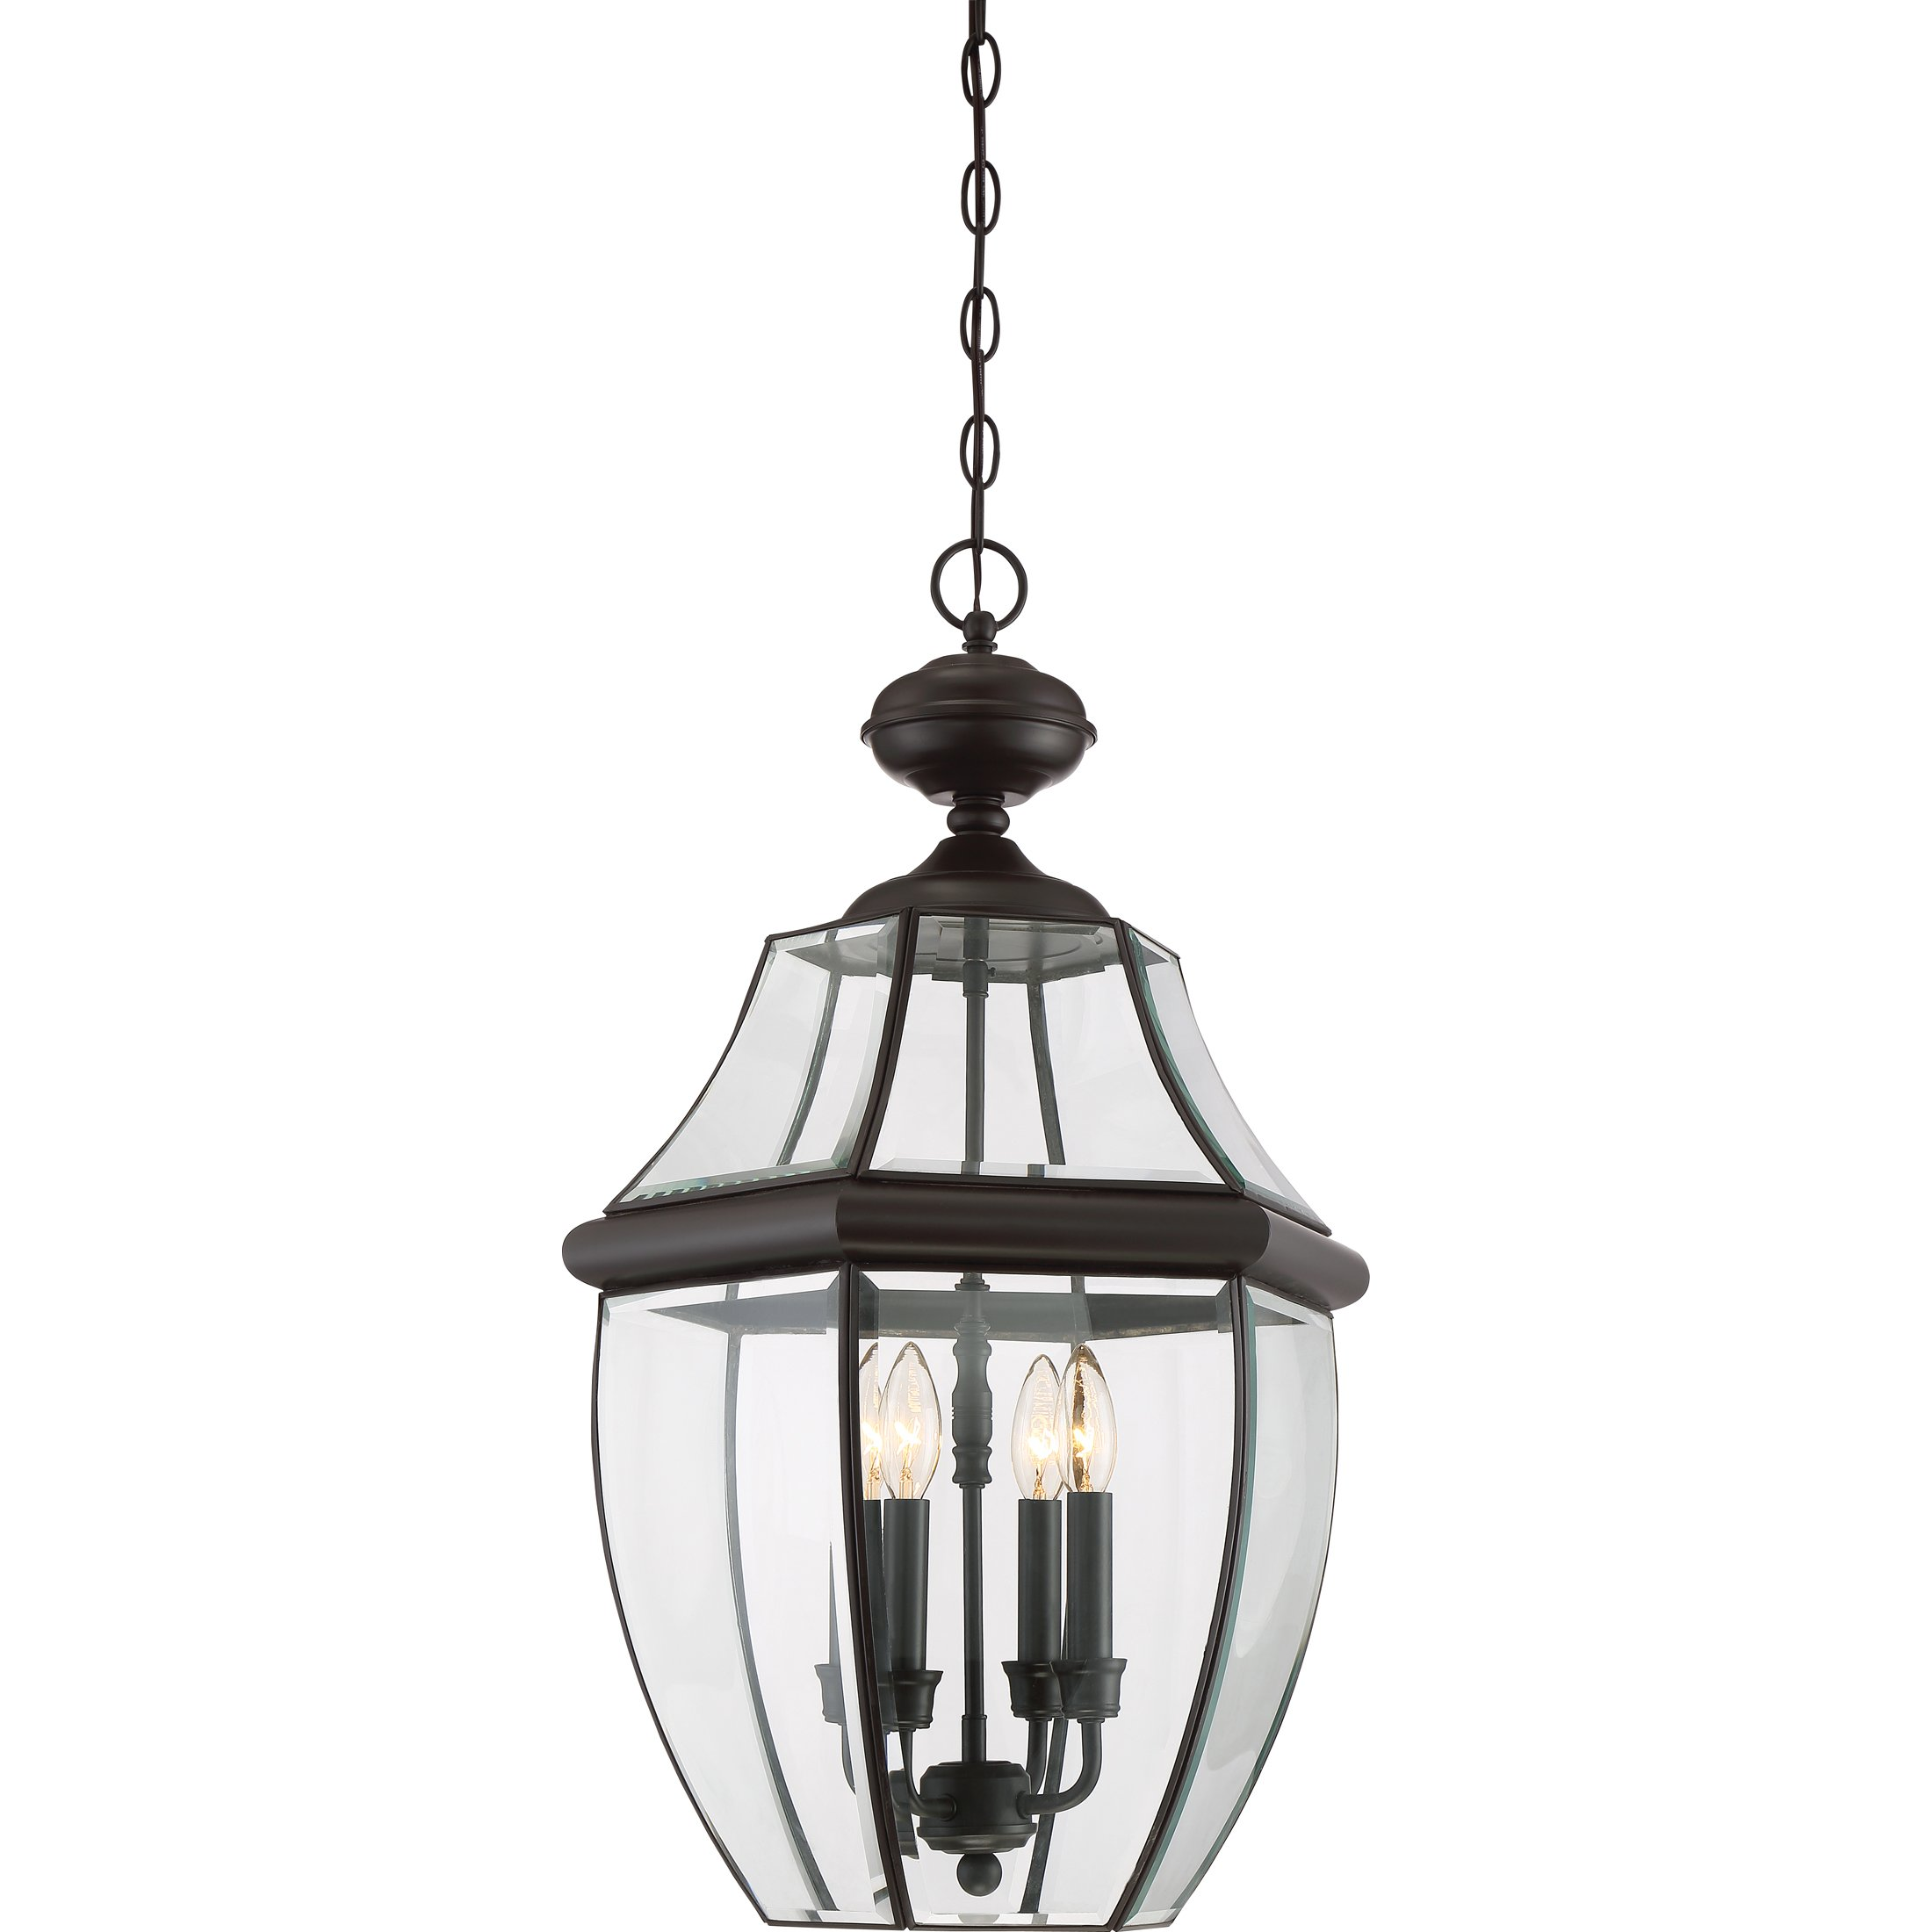 Quoizel NY1180Z 4-Light Newbury Outdoor Lantern in Medici Bronze by Quoizel